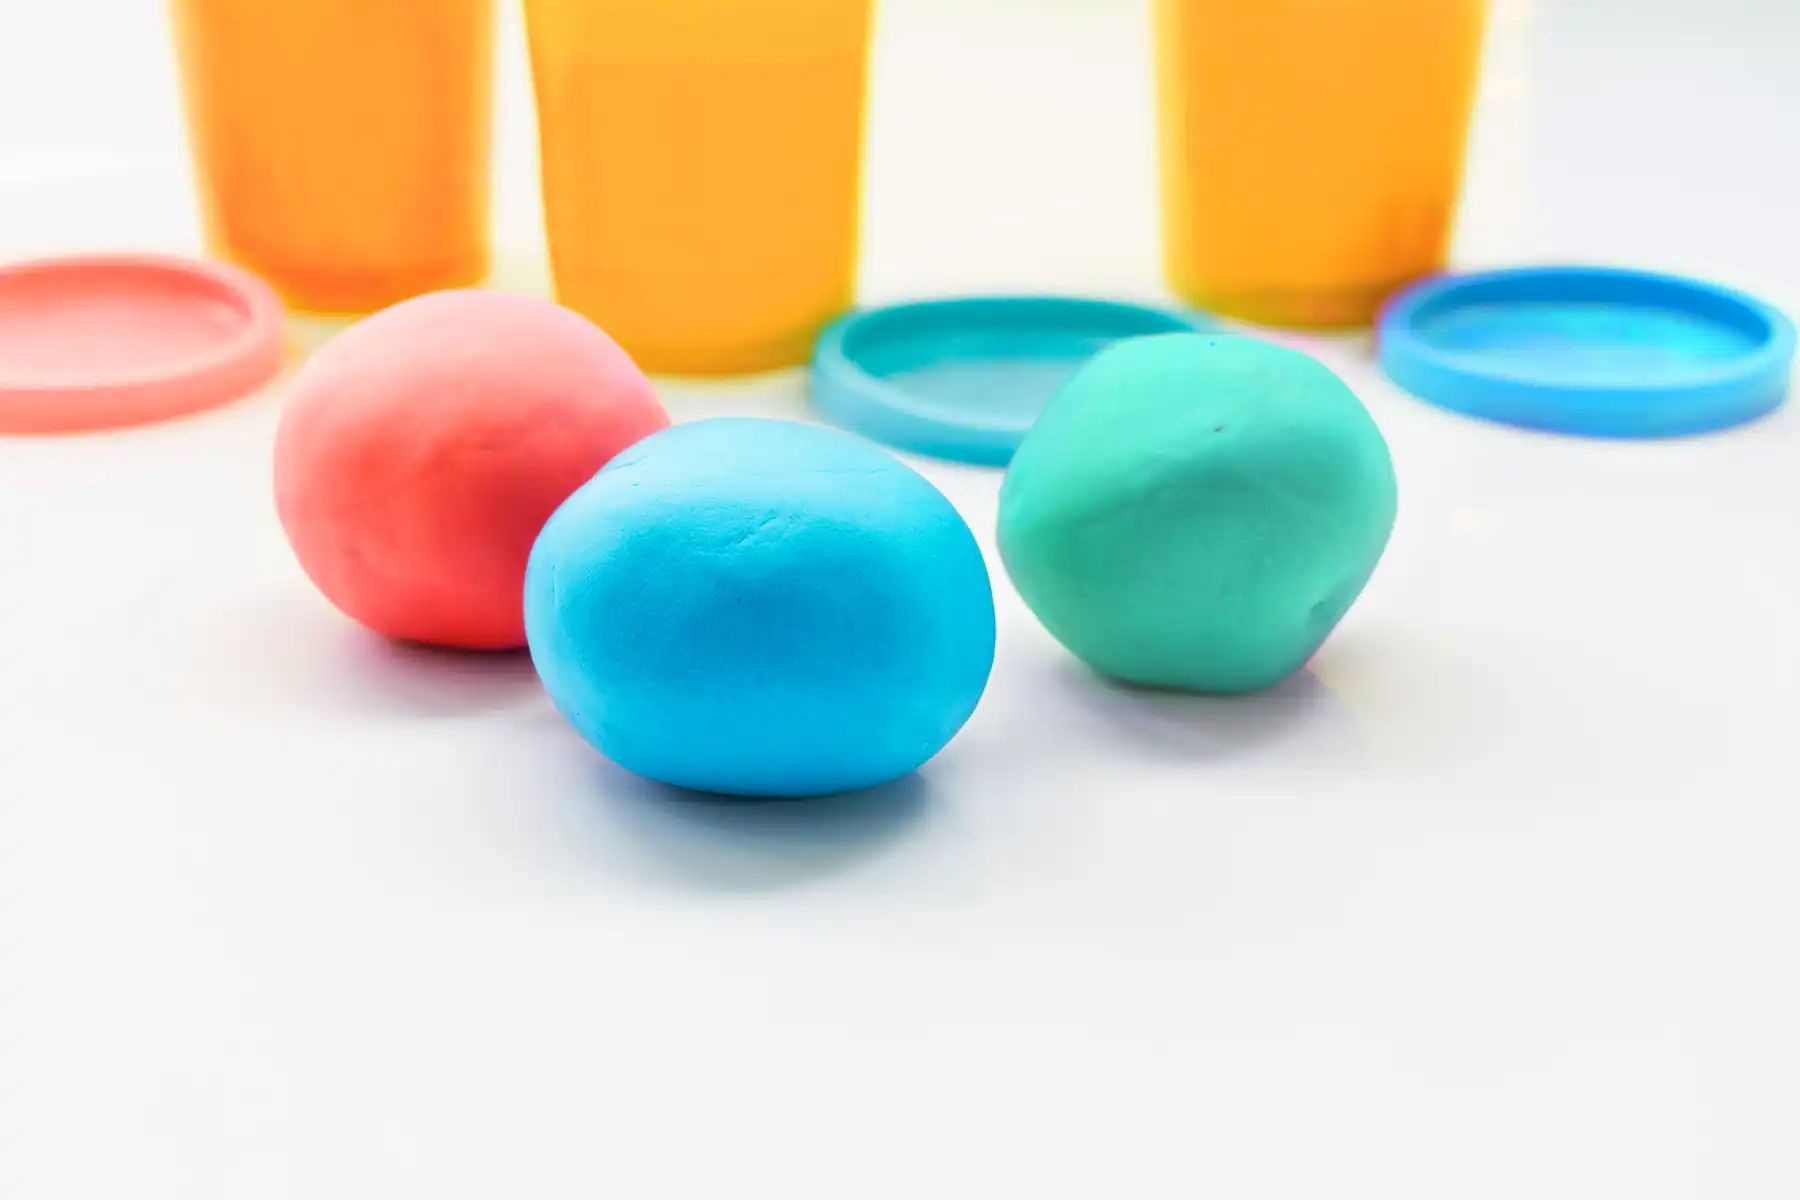 3 pots sit on a white surface with their lids beside them, with red, blue and aqua balls of playdough in front of them